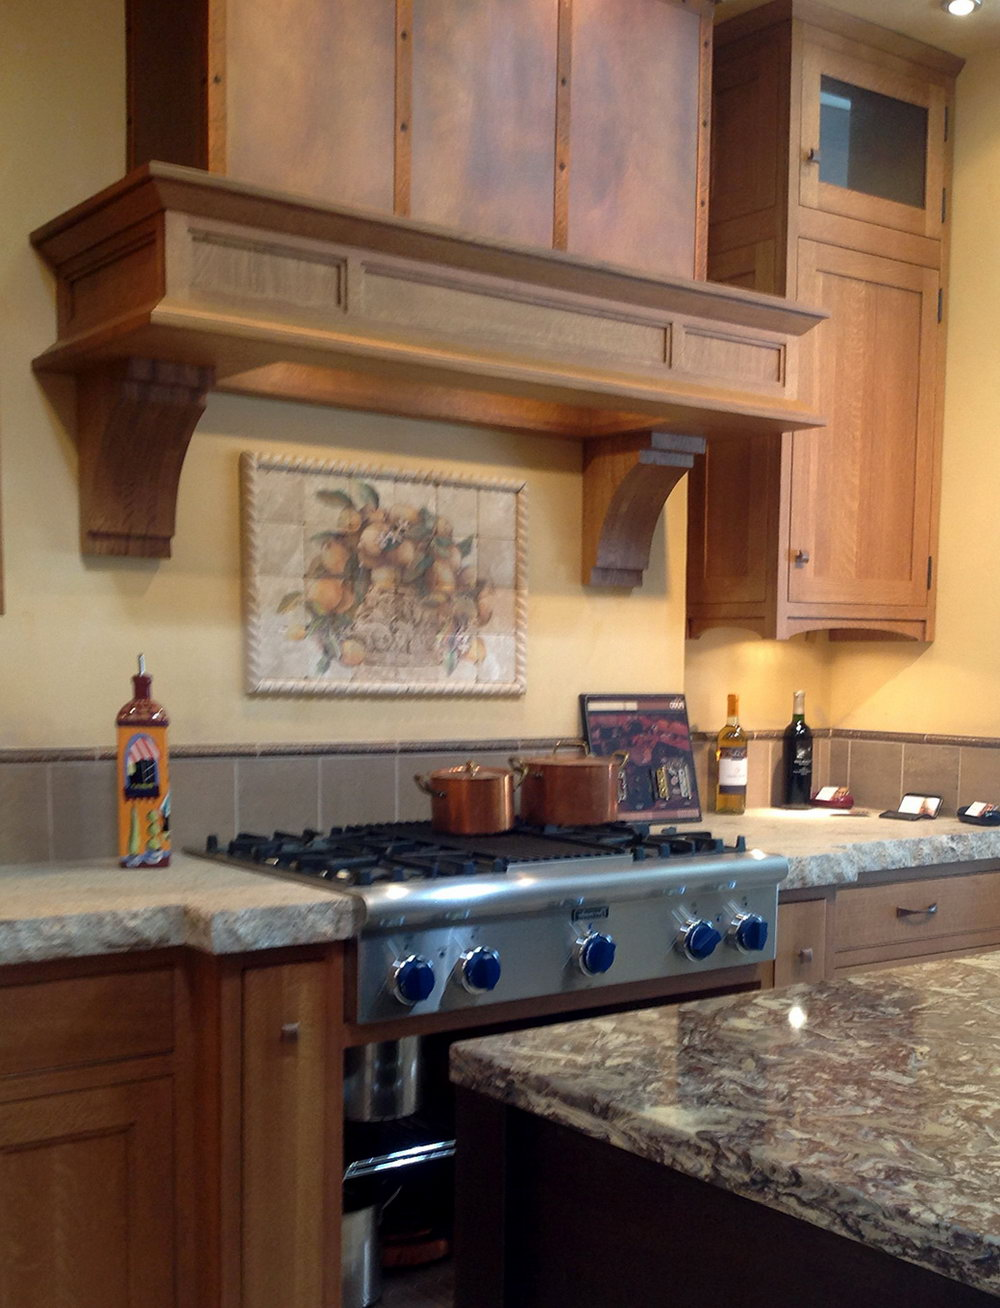 Kitchen Cabinet Showrooms Near Me